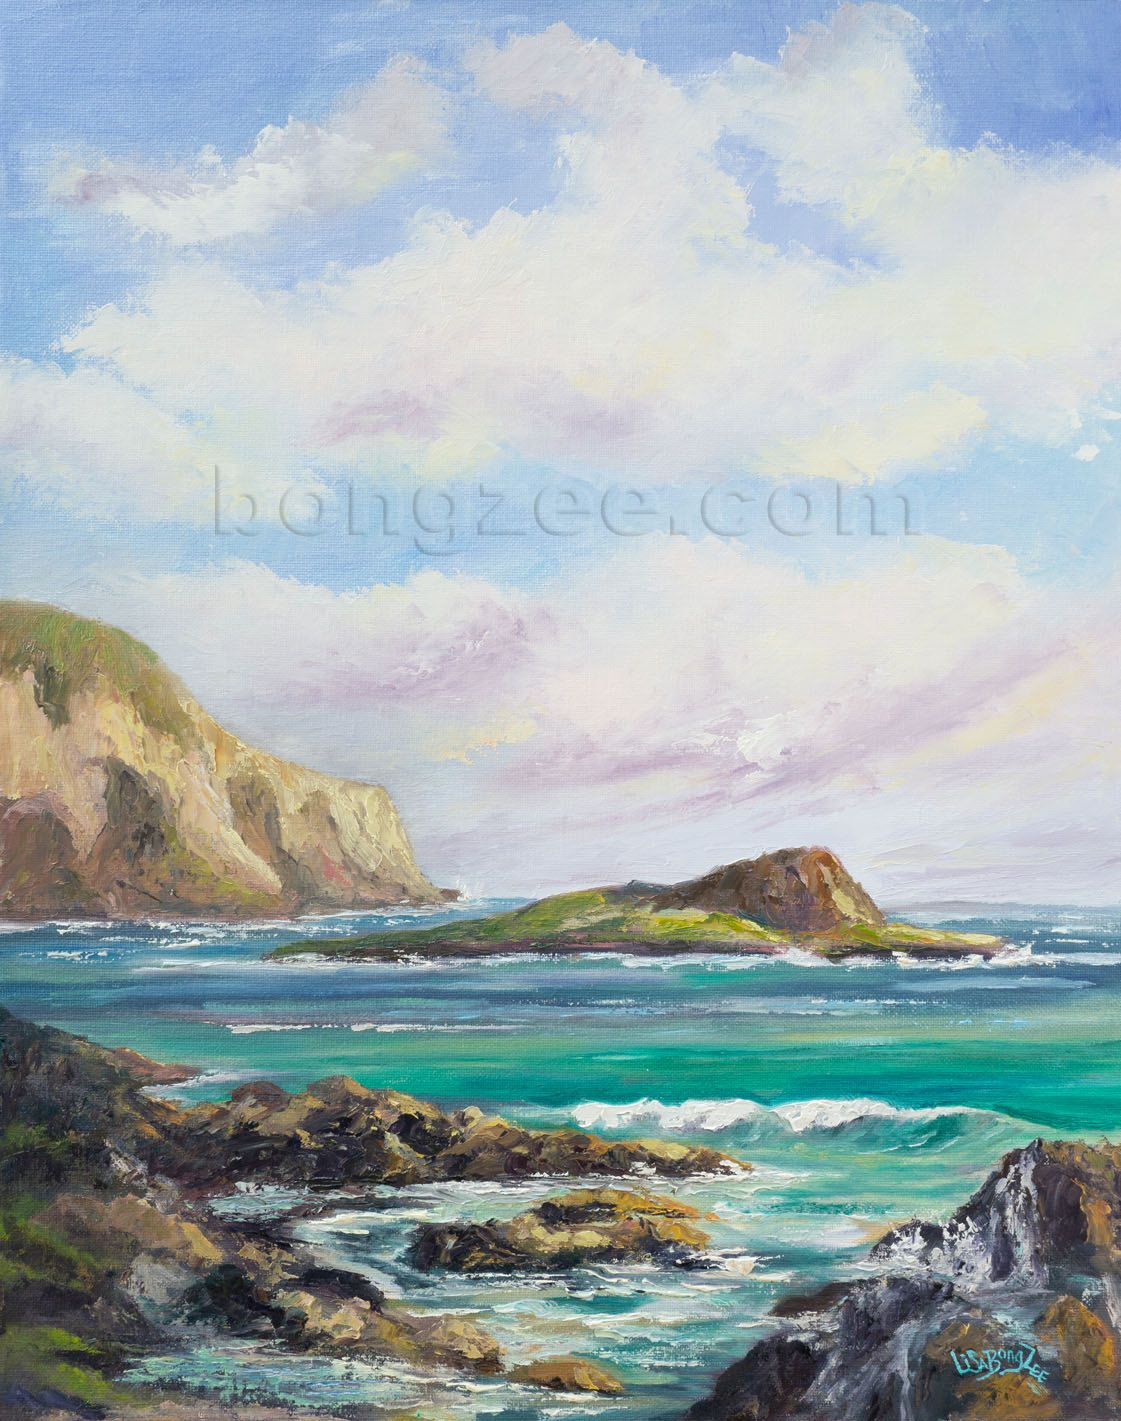 Tropical Artwork Makapuu Beach Original Oil Painting Art Artwork Tropical